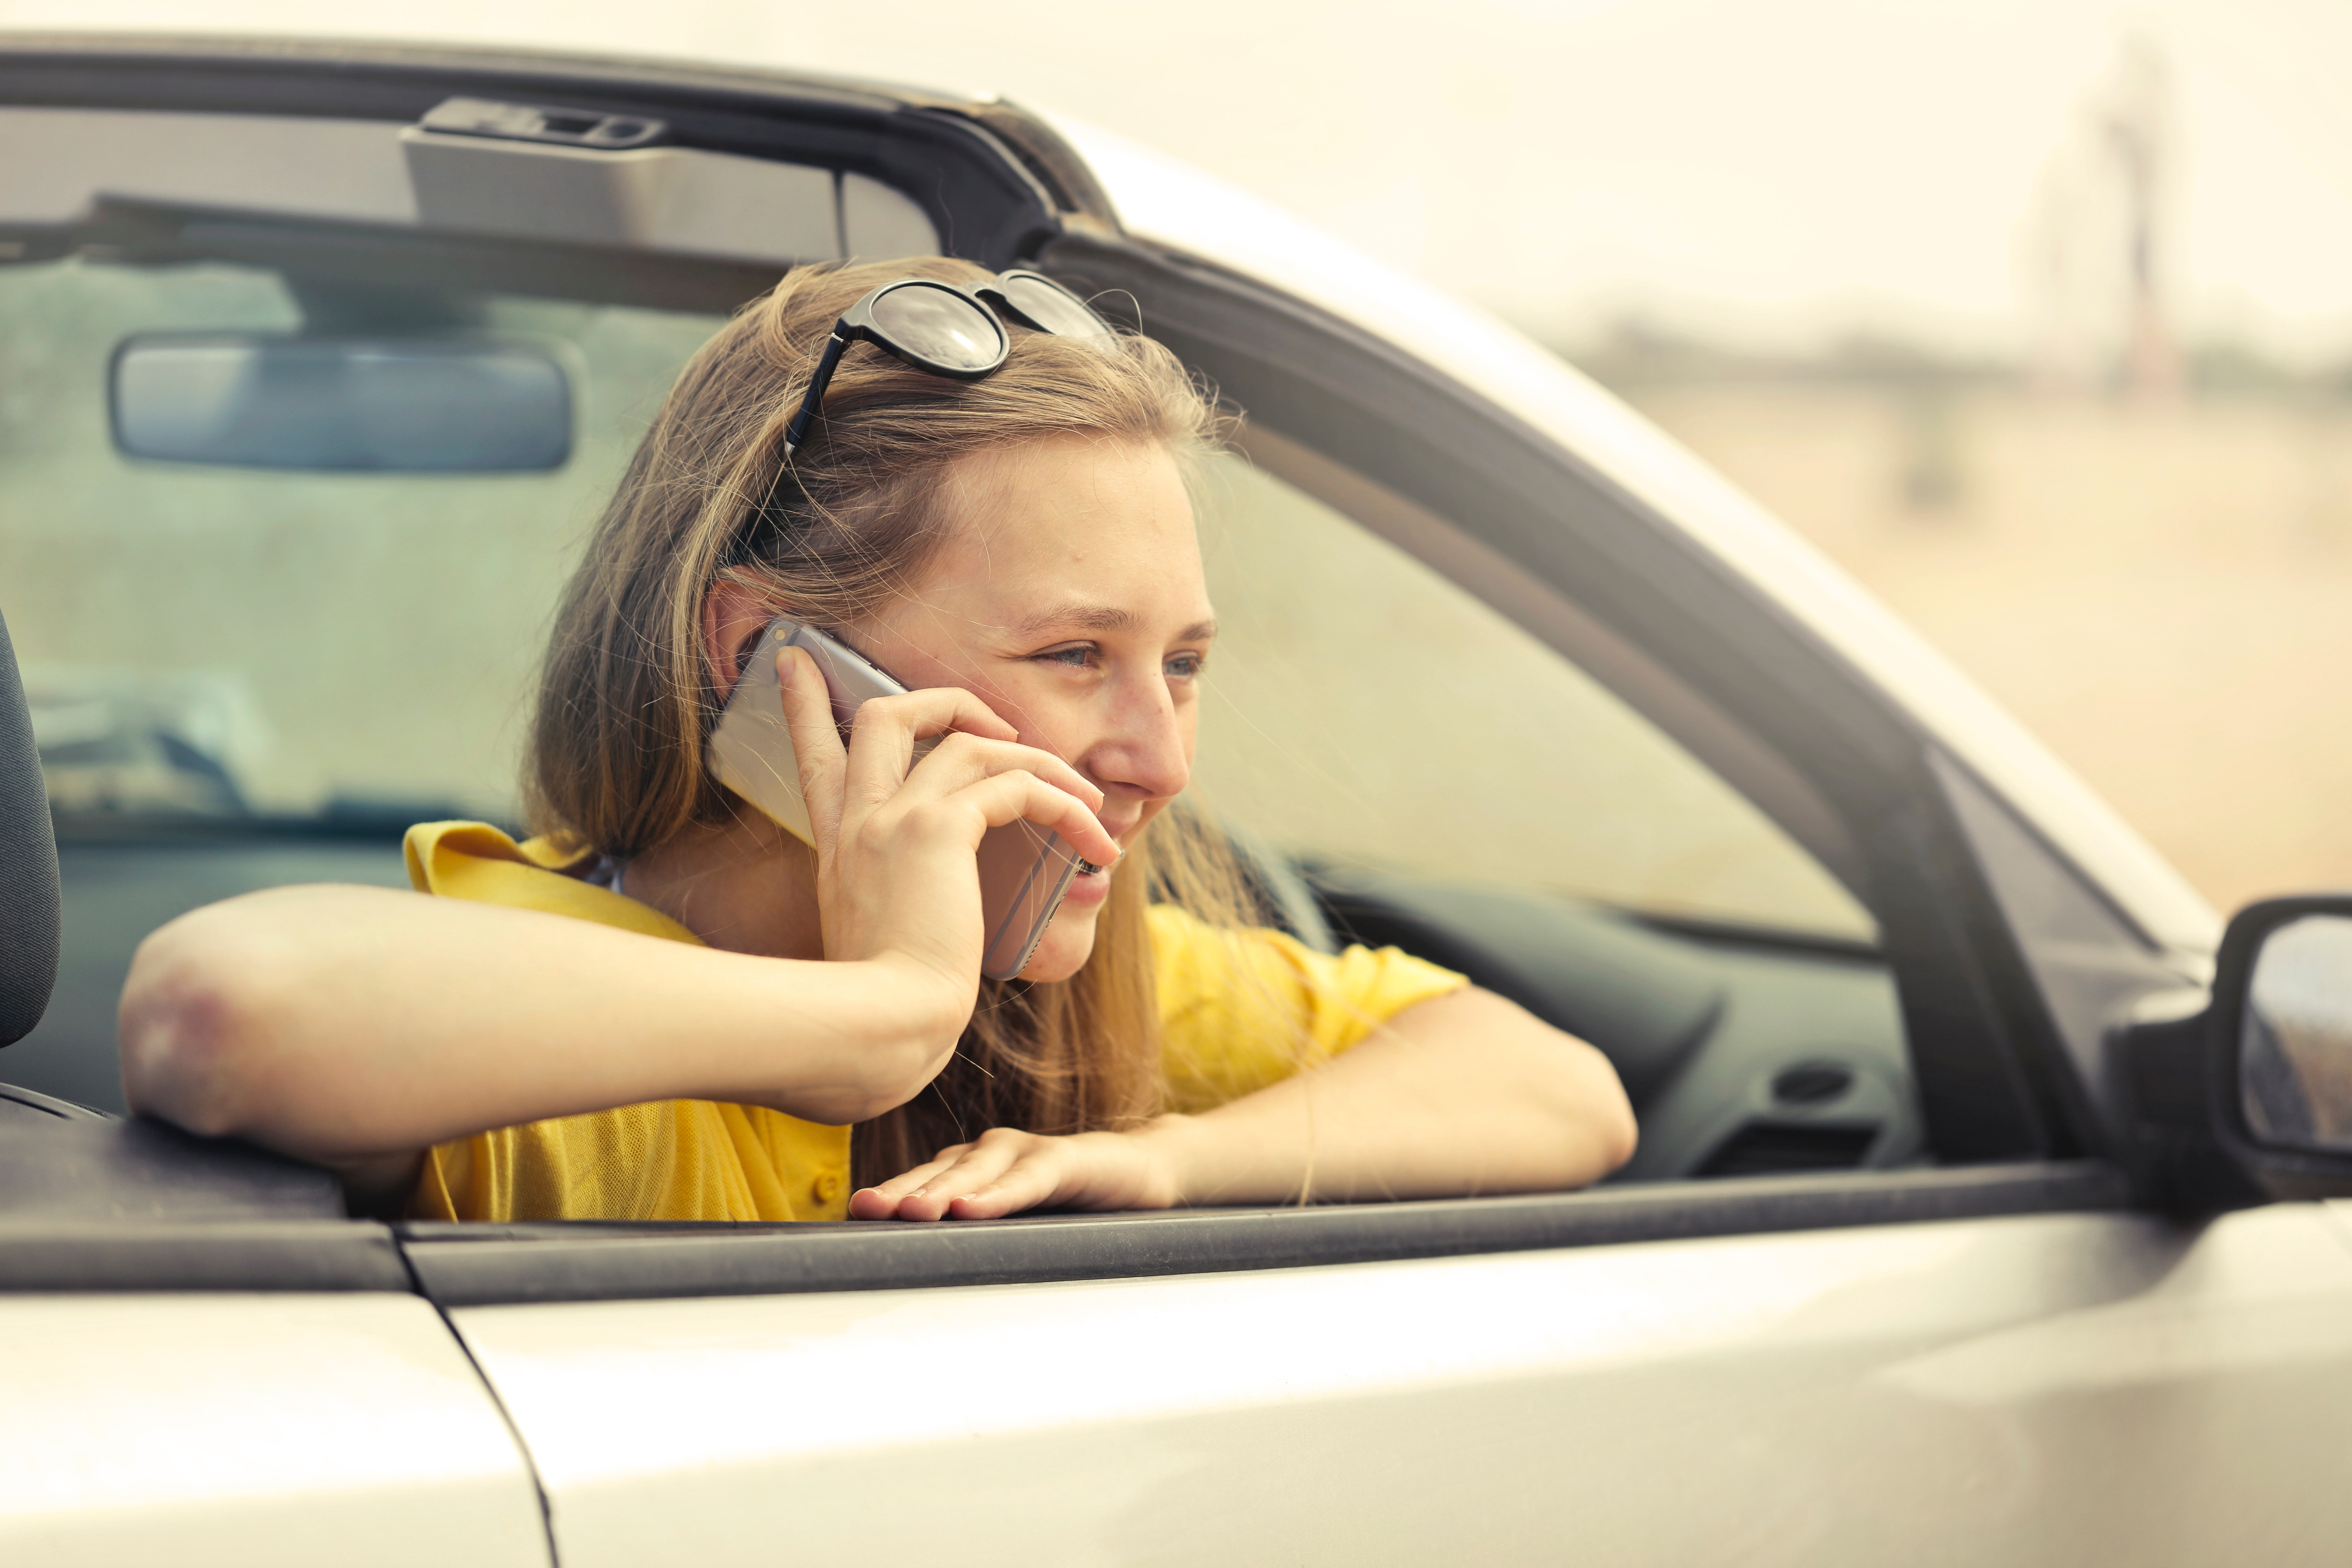 Blonde-haired Woman in Yellow T-shirt Wearing Black Sunglasses Holding Silver Smartphone, Blur, Seat, Windshield, Vehicle, HQ Photo